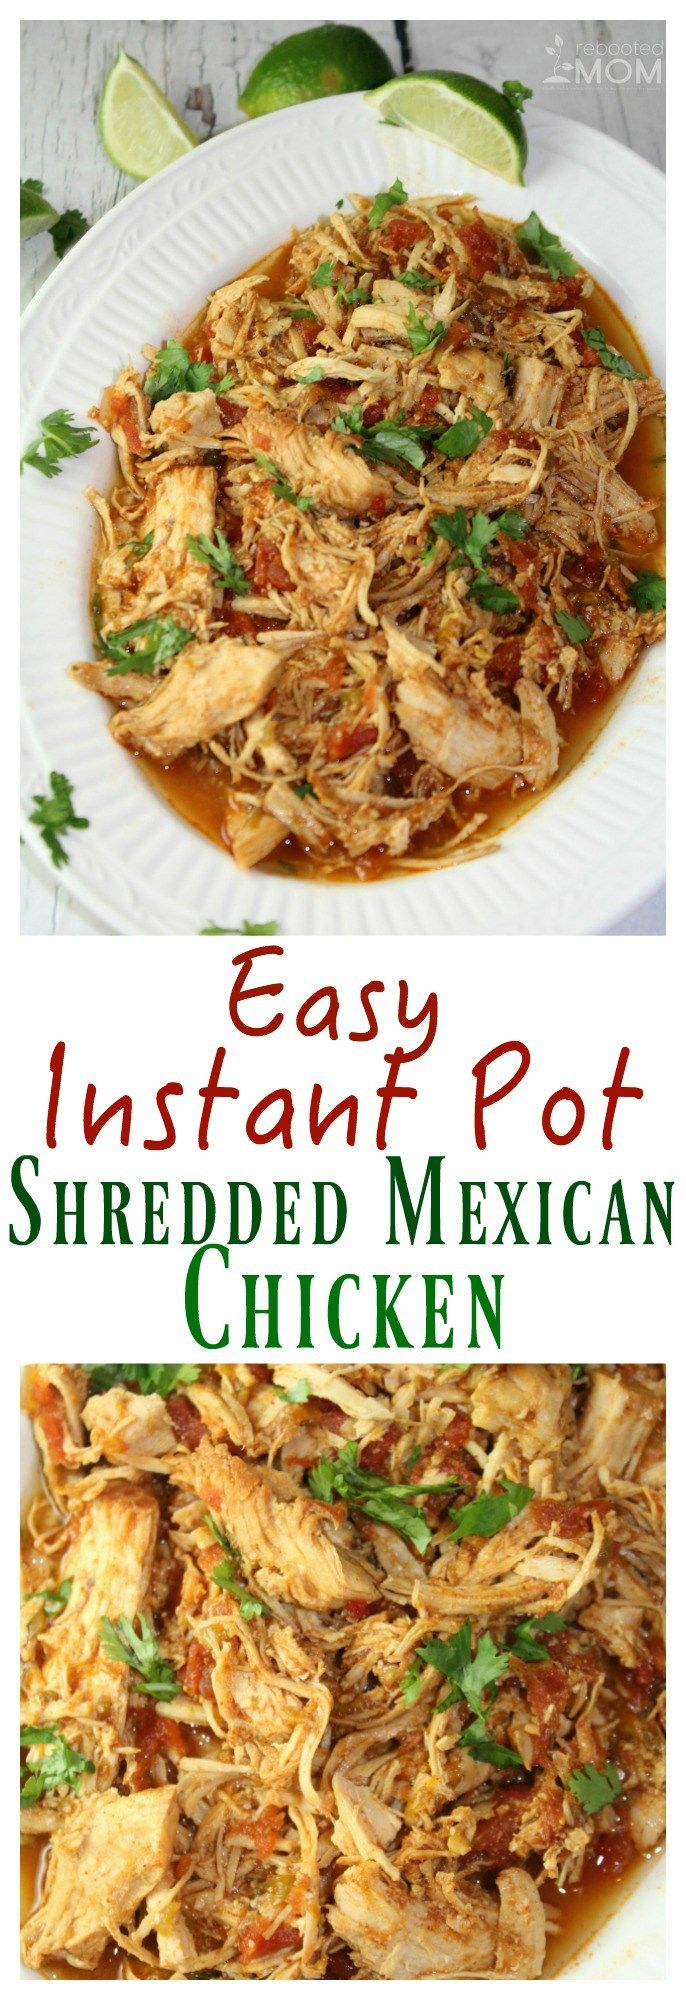 Easy Instant Pot Shredded Mexican Chicken